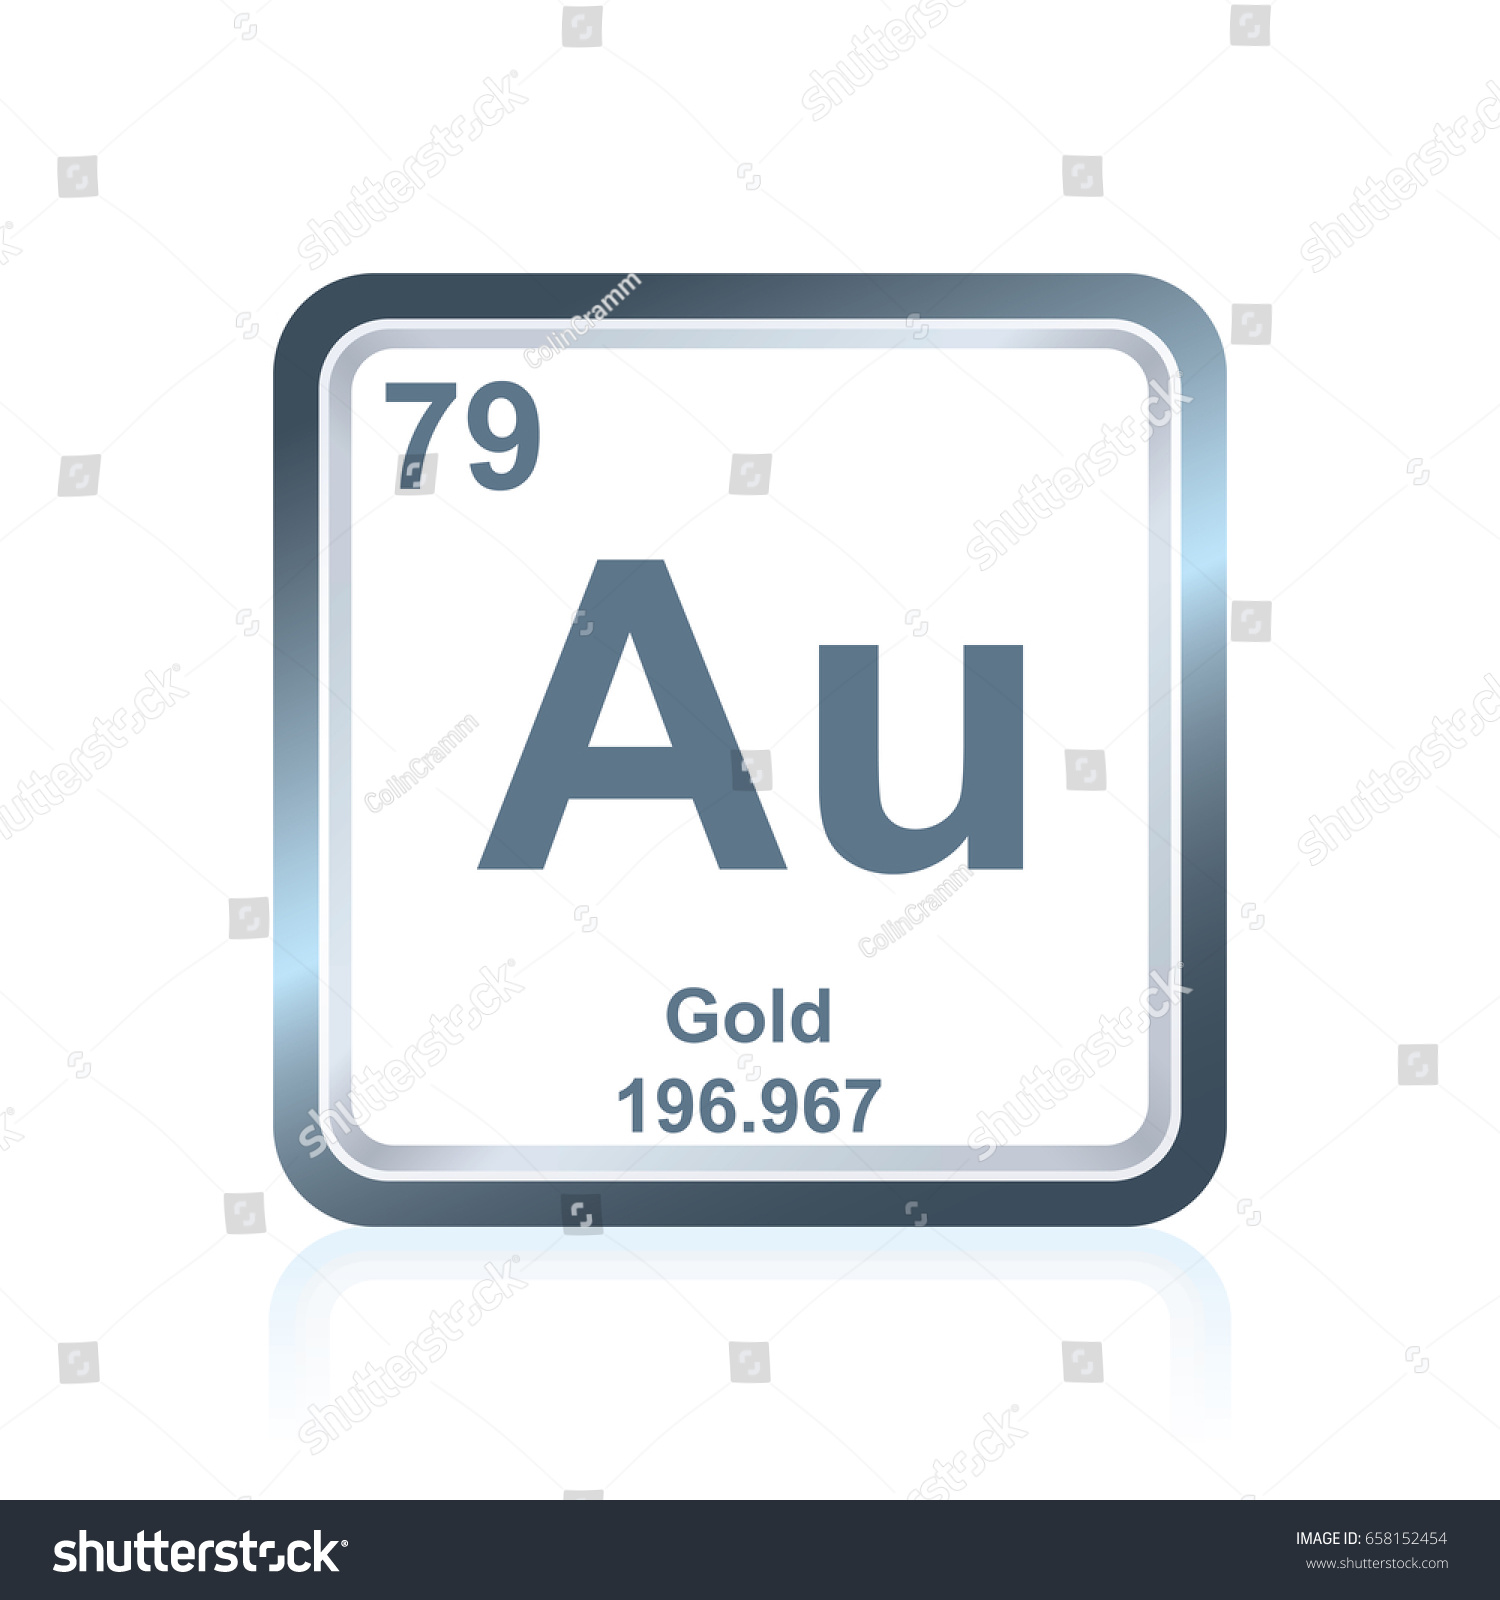 Chemical symbol for gold on periodic table gallery periodic chemical symbol for gold on periodic table images periodic table chemical symbol for gold on periodic gamestrikefo Gallery